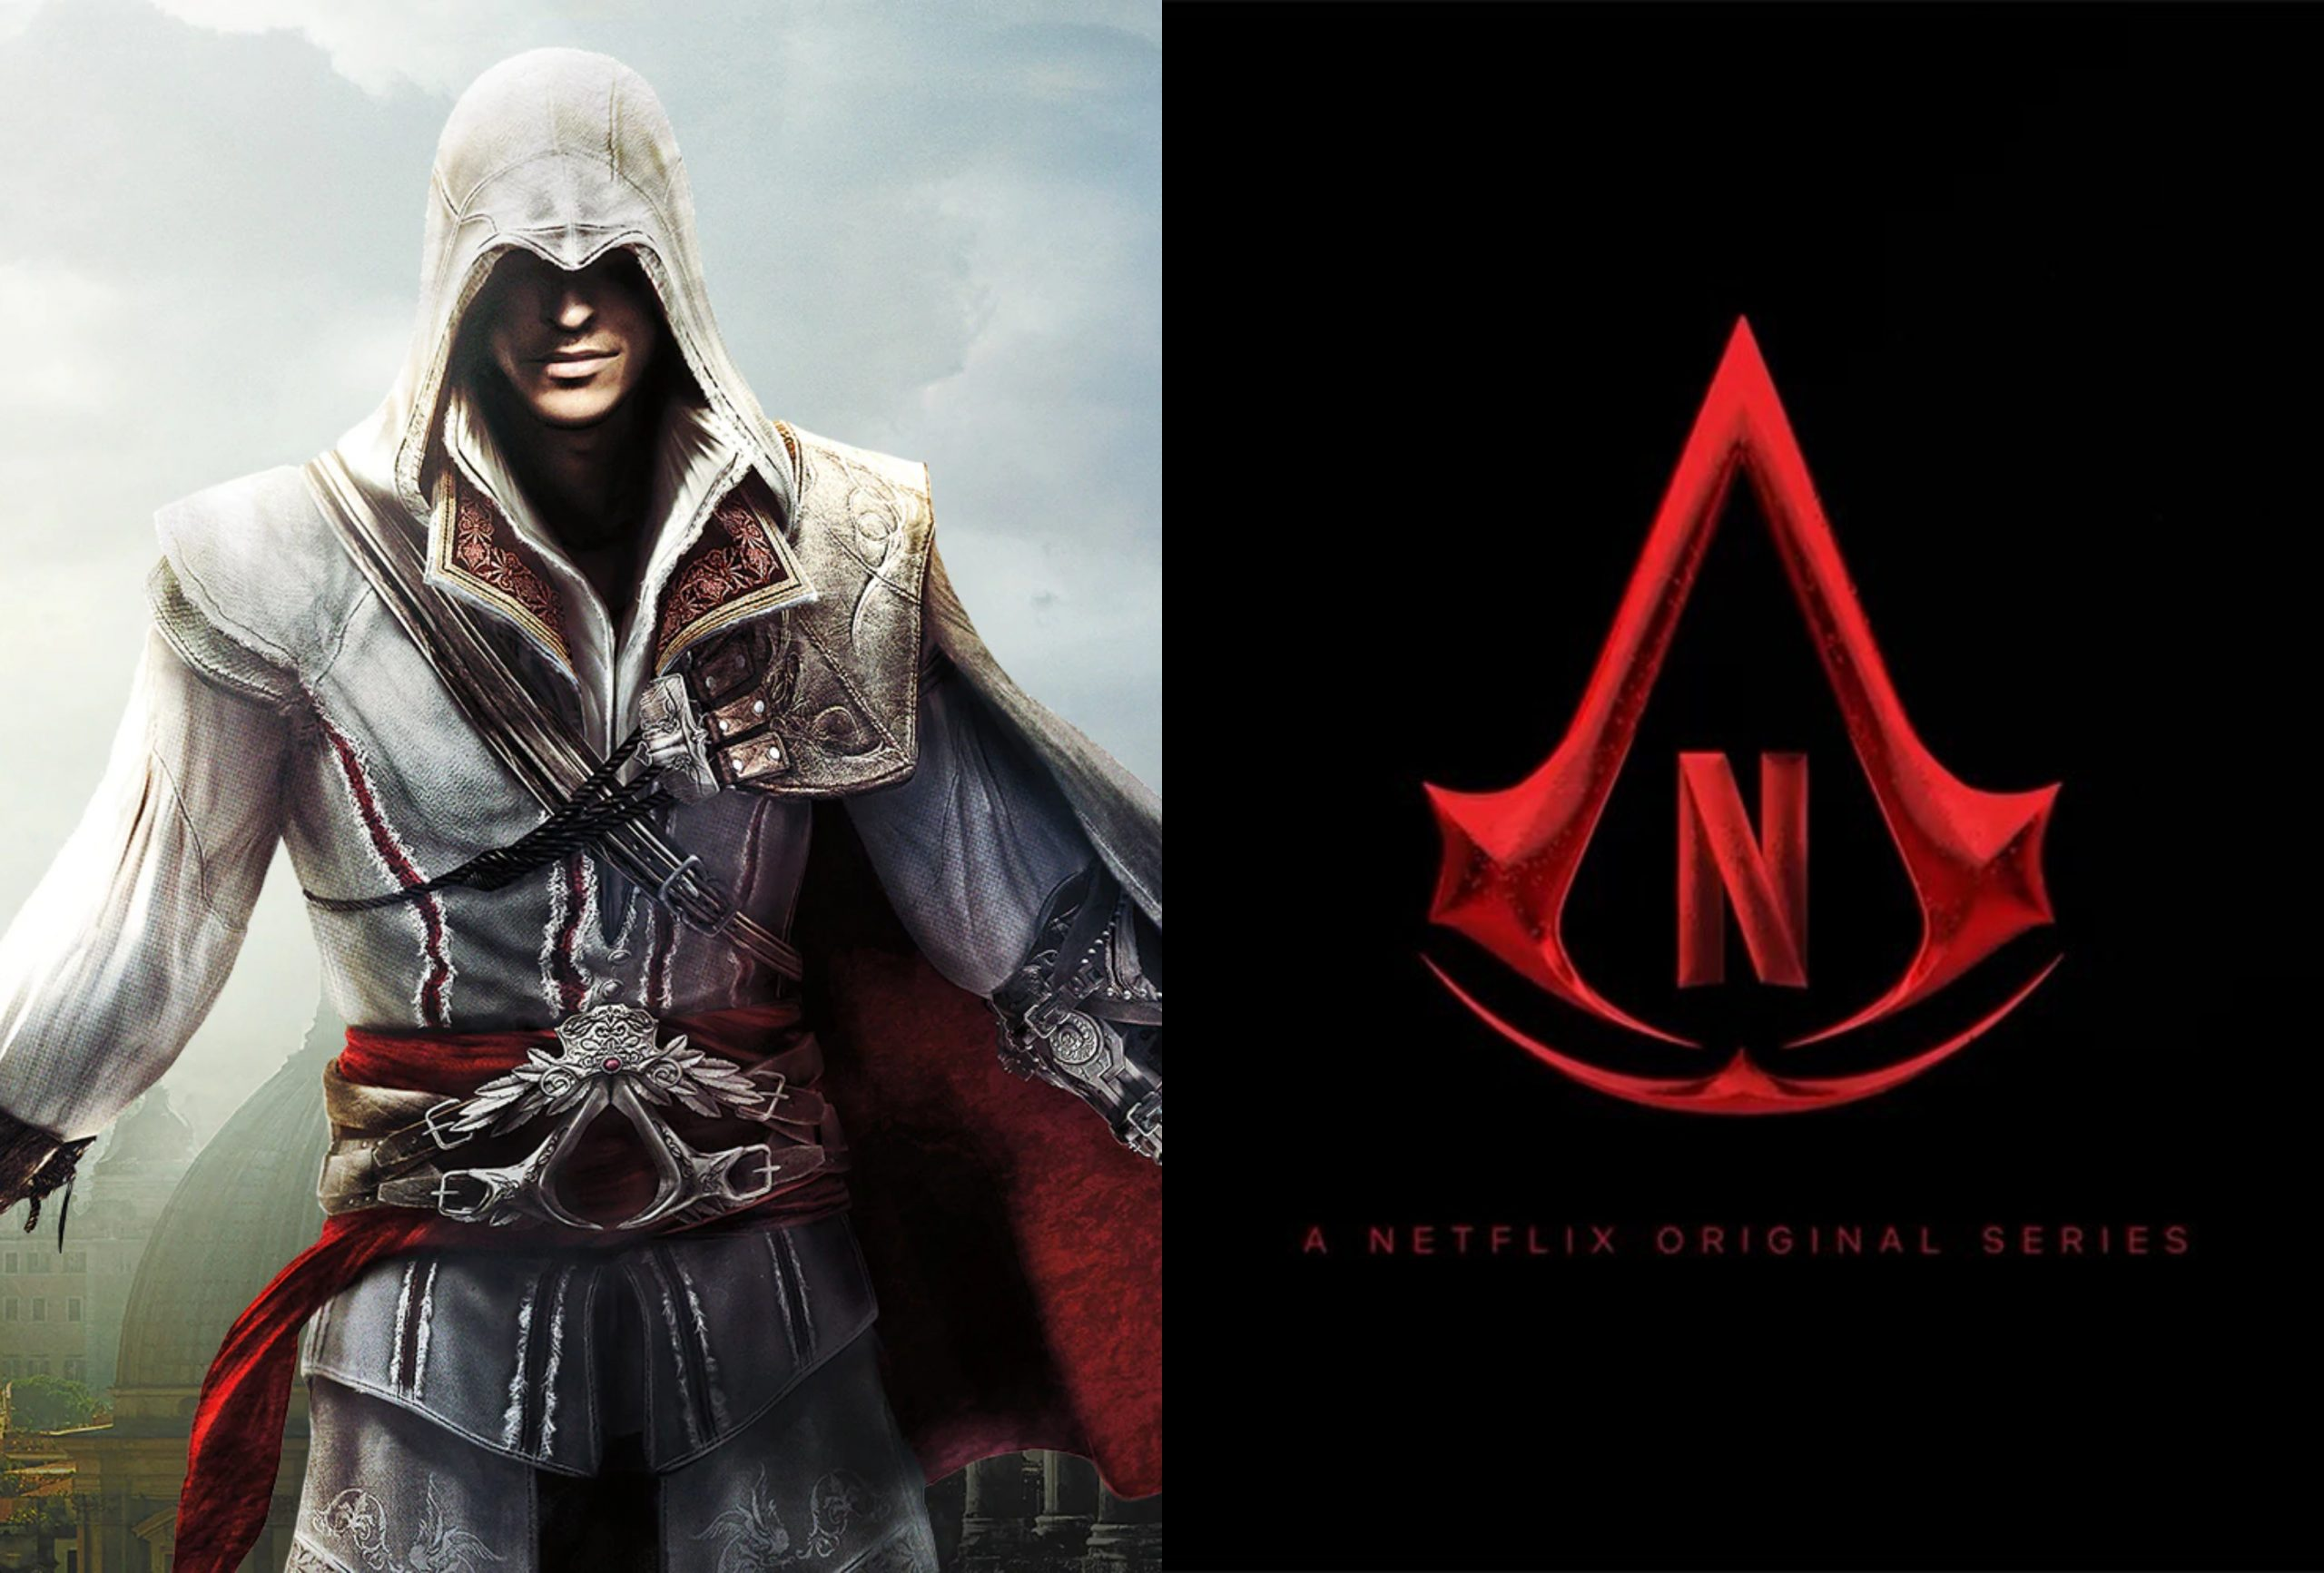 Assassin's Creed série Netflix